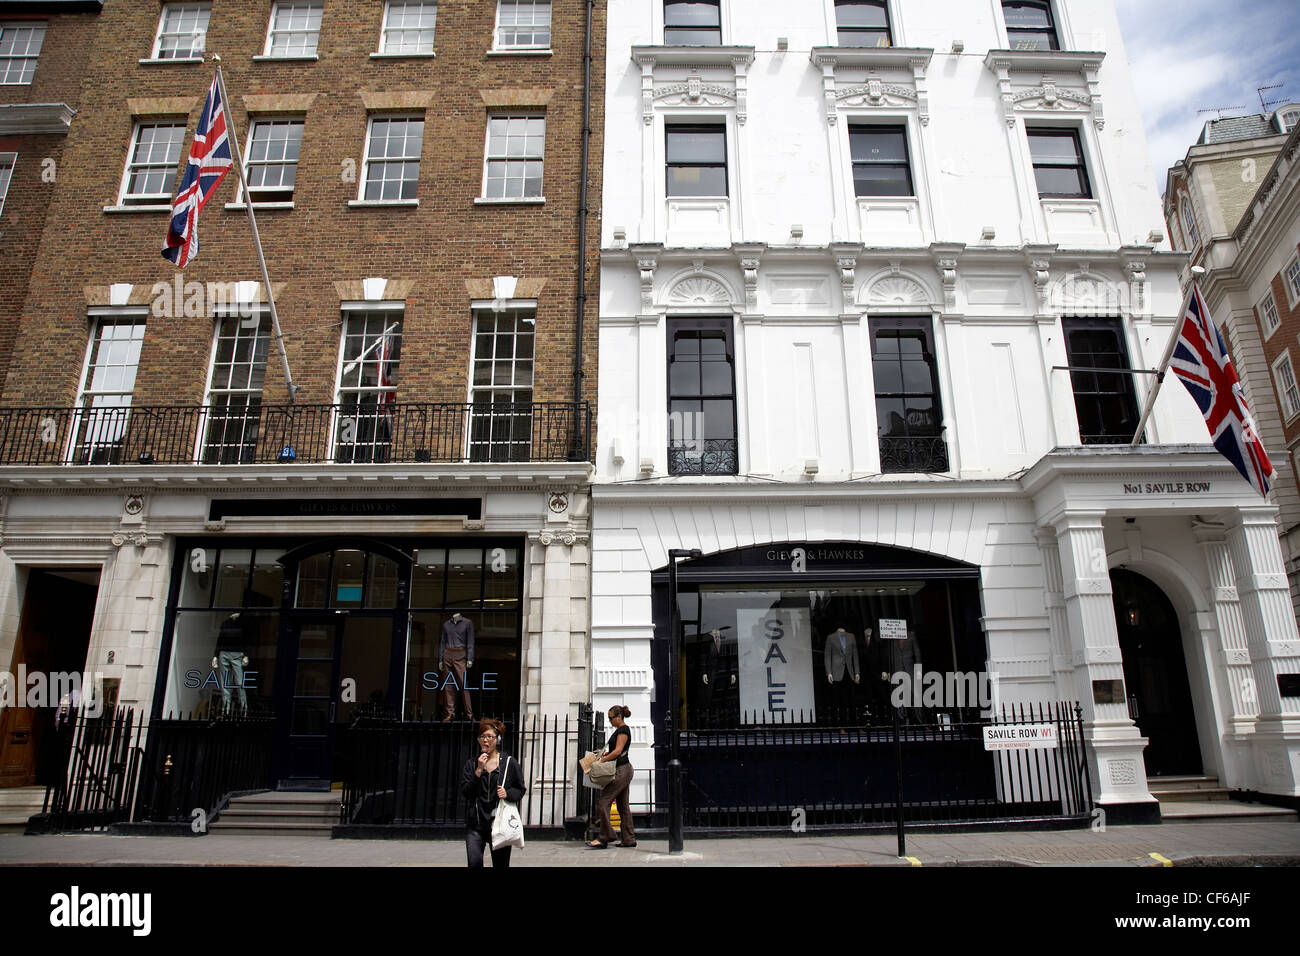 Exterior view of prestige shop fronts in Saville Row. - Stock Image